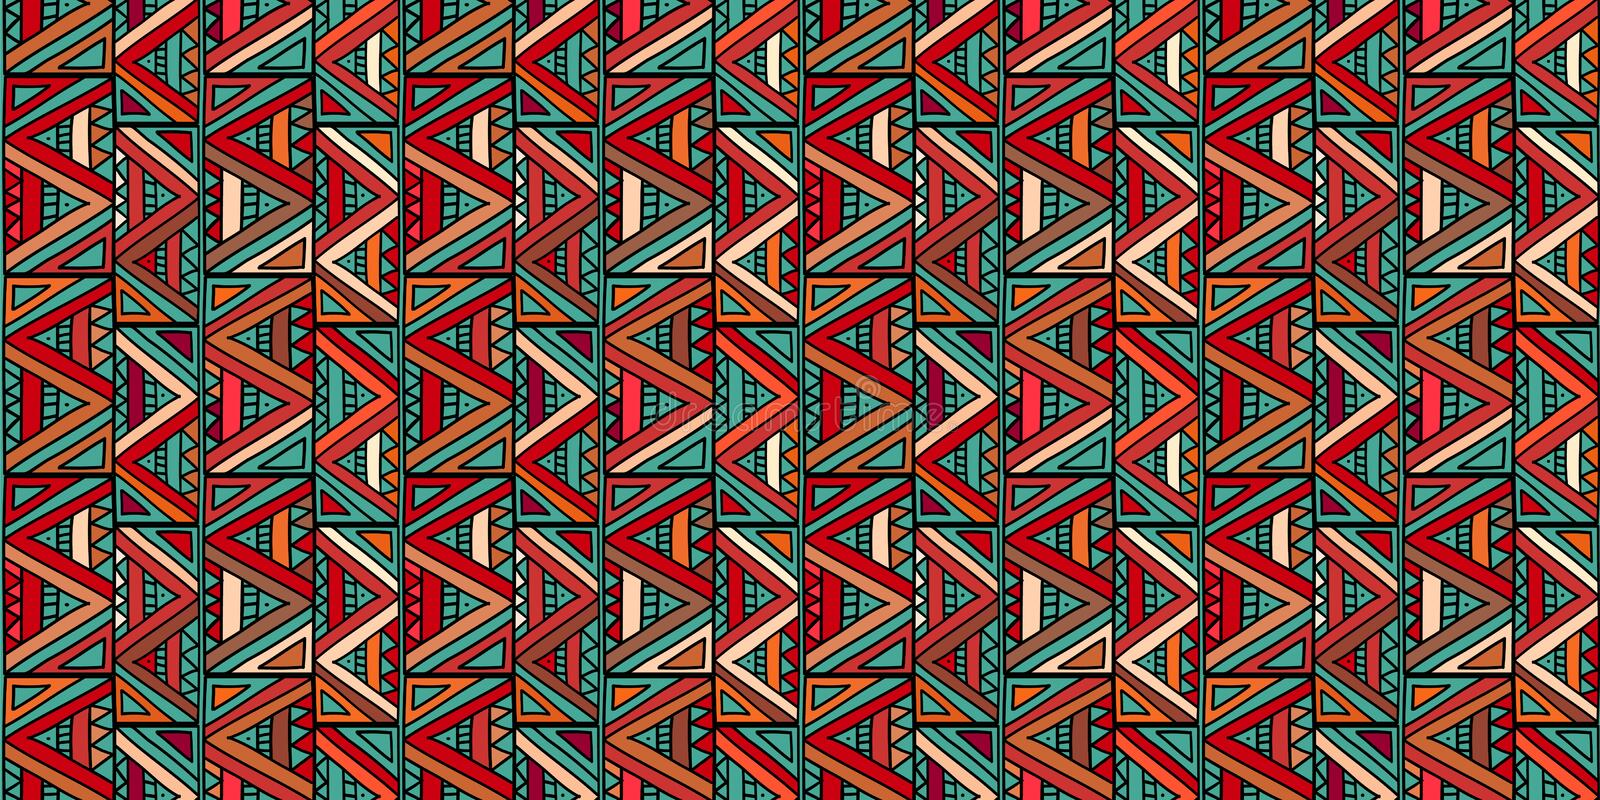 Tribal pattern with triangle colorful ethnic drawing seamless handmade design vector illustration